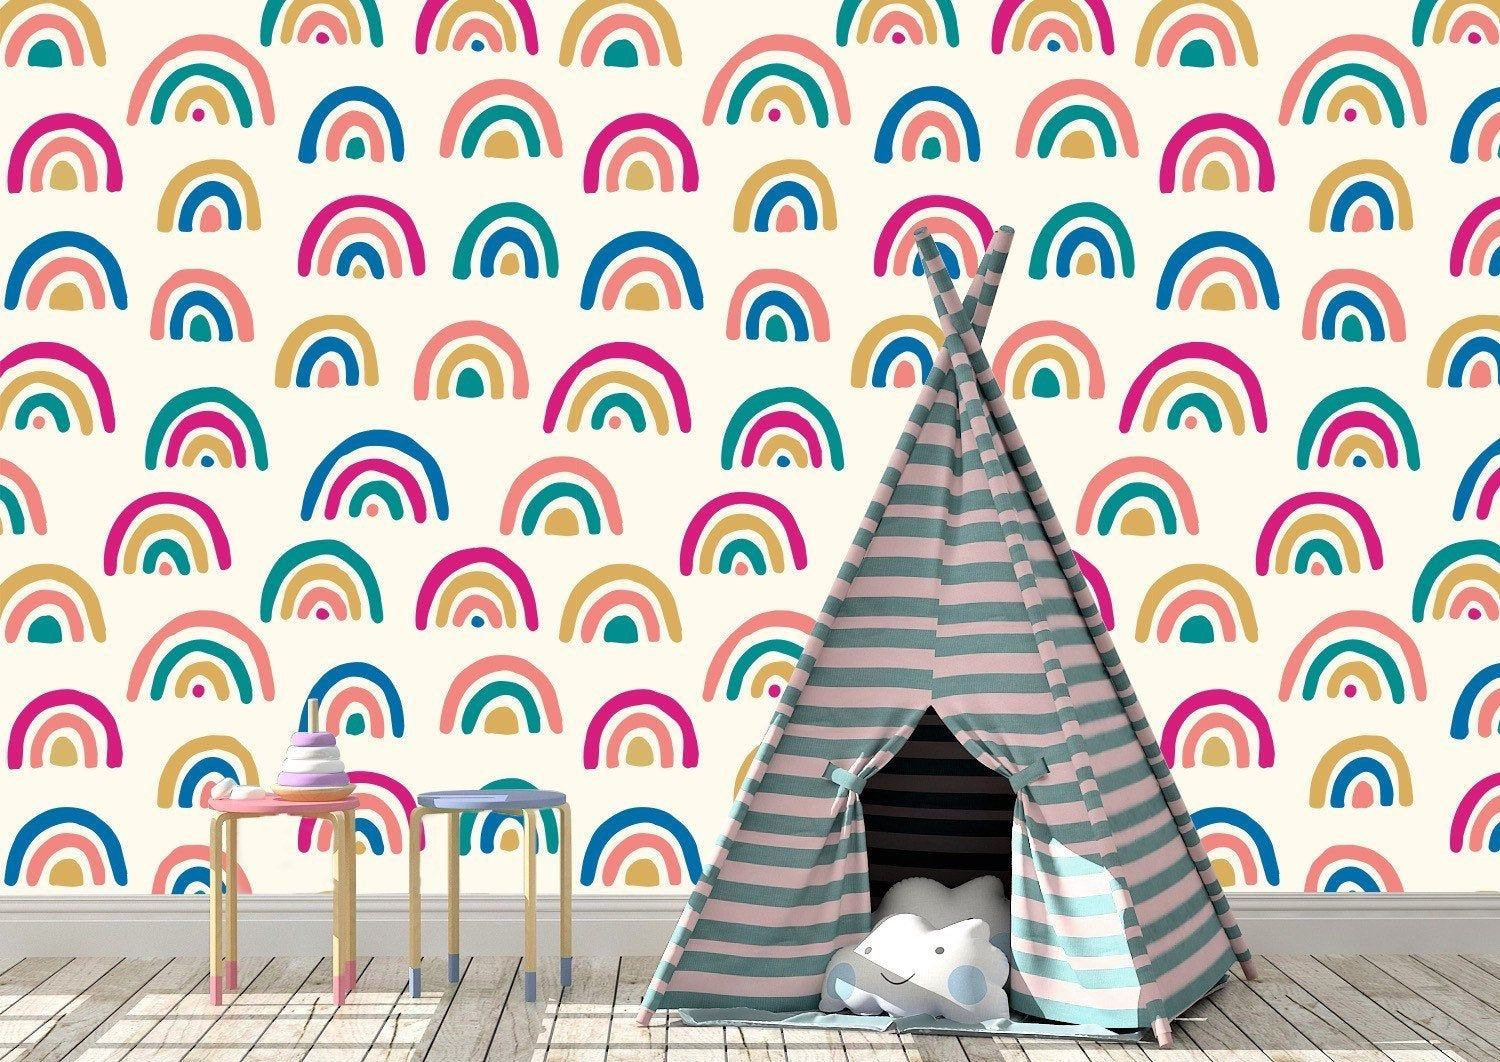 Removable Peel And Stick Wallpaper Rainbow Wallpaper Etsy Wallpaper Peel And Stick Wallpaper Rainbow Wallpaper